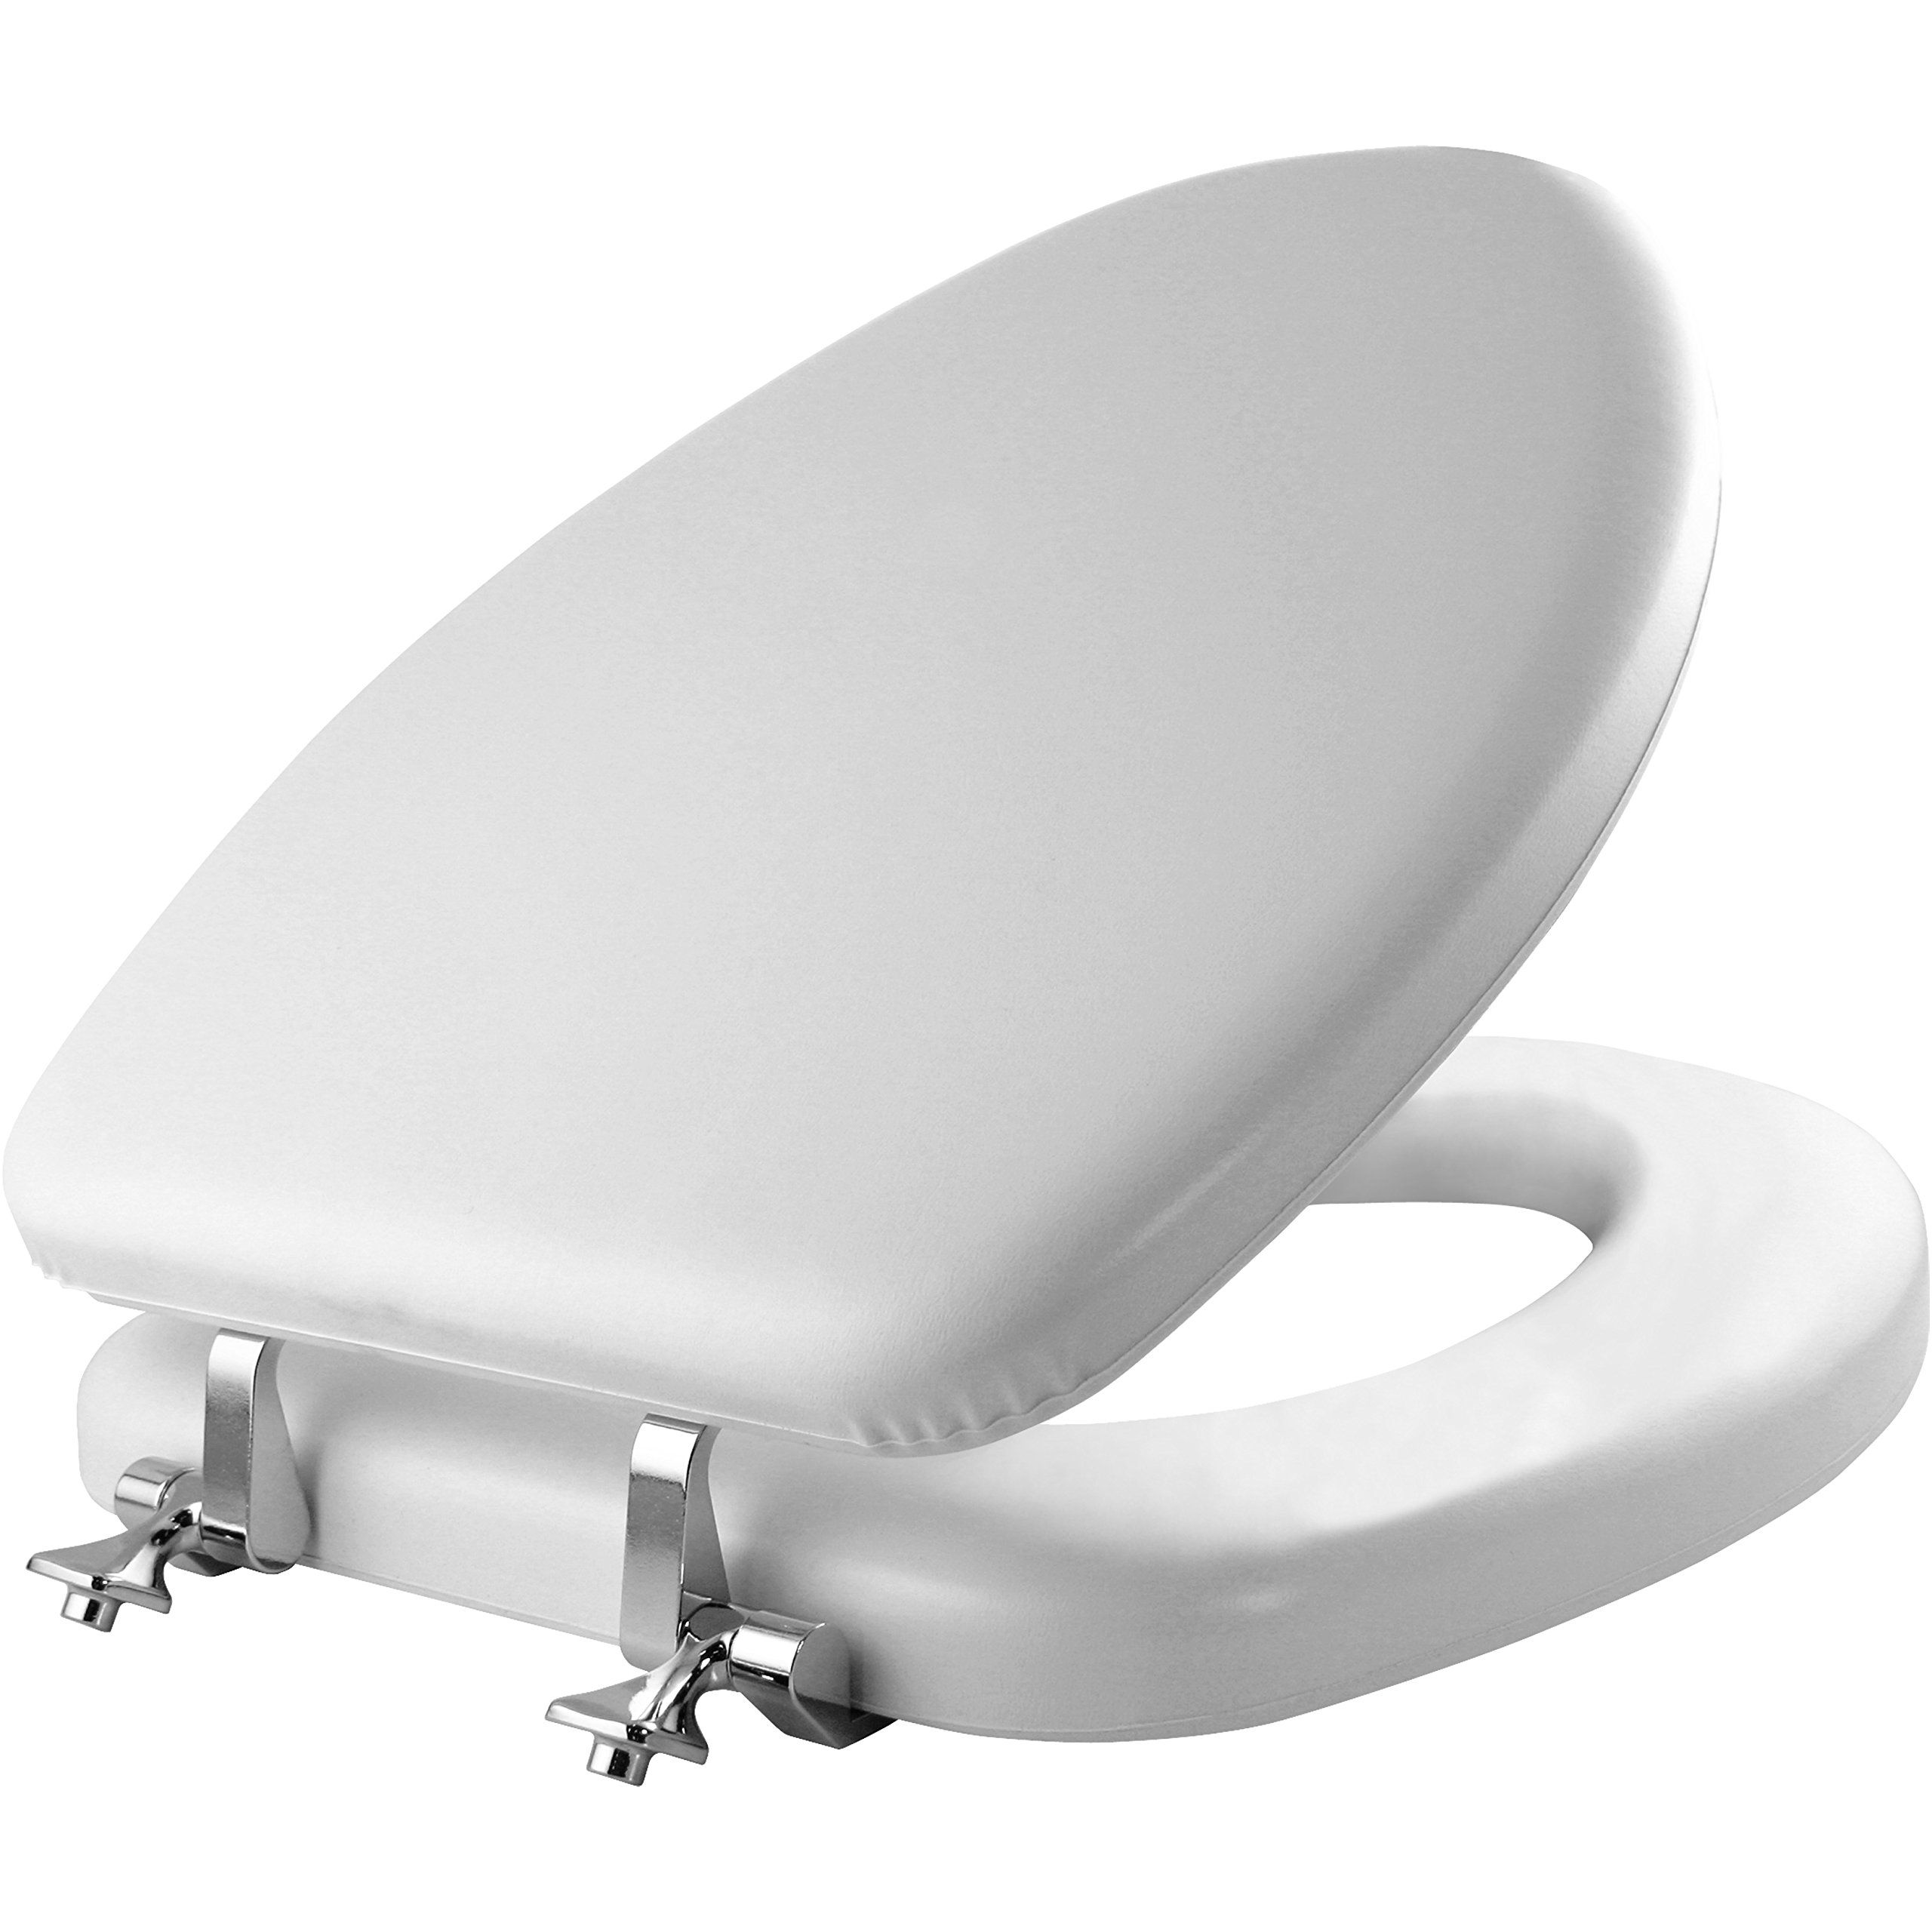 Mayfair Toilet Classic Elongated 113CP